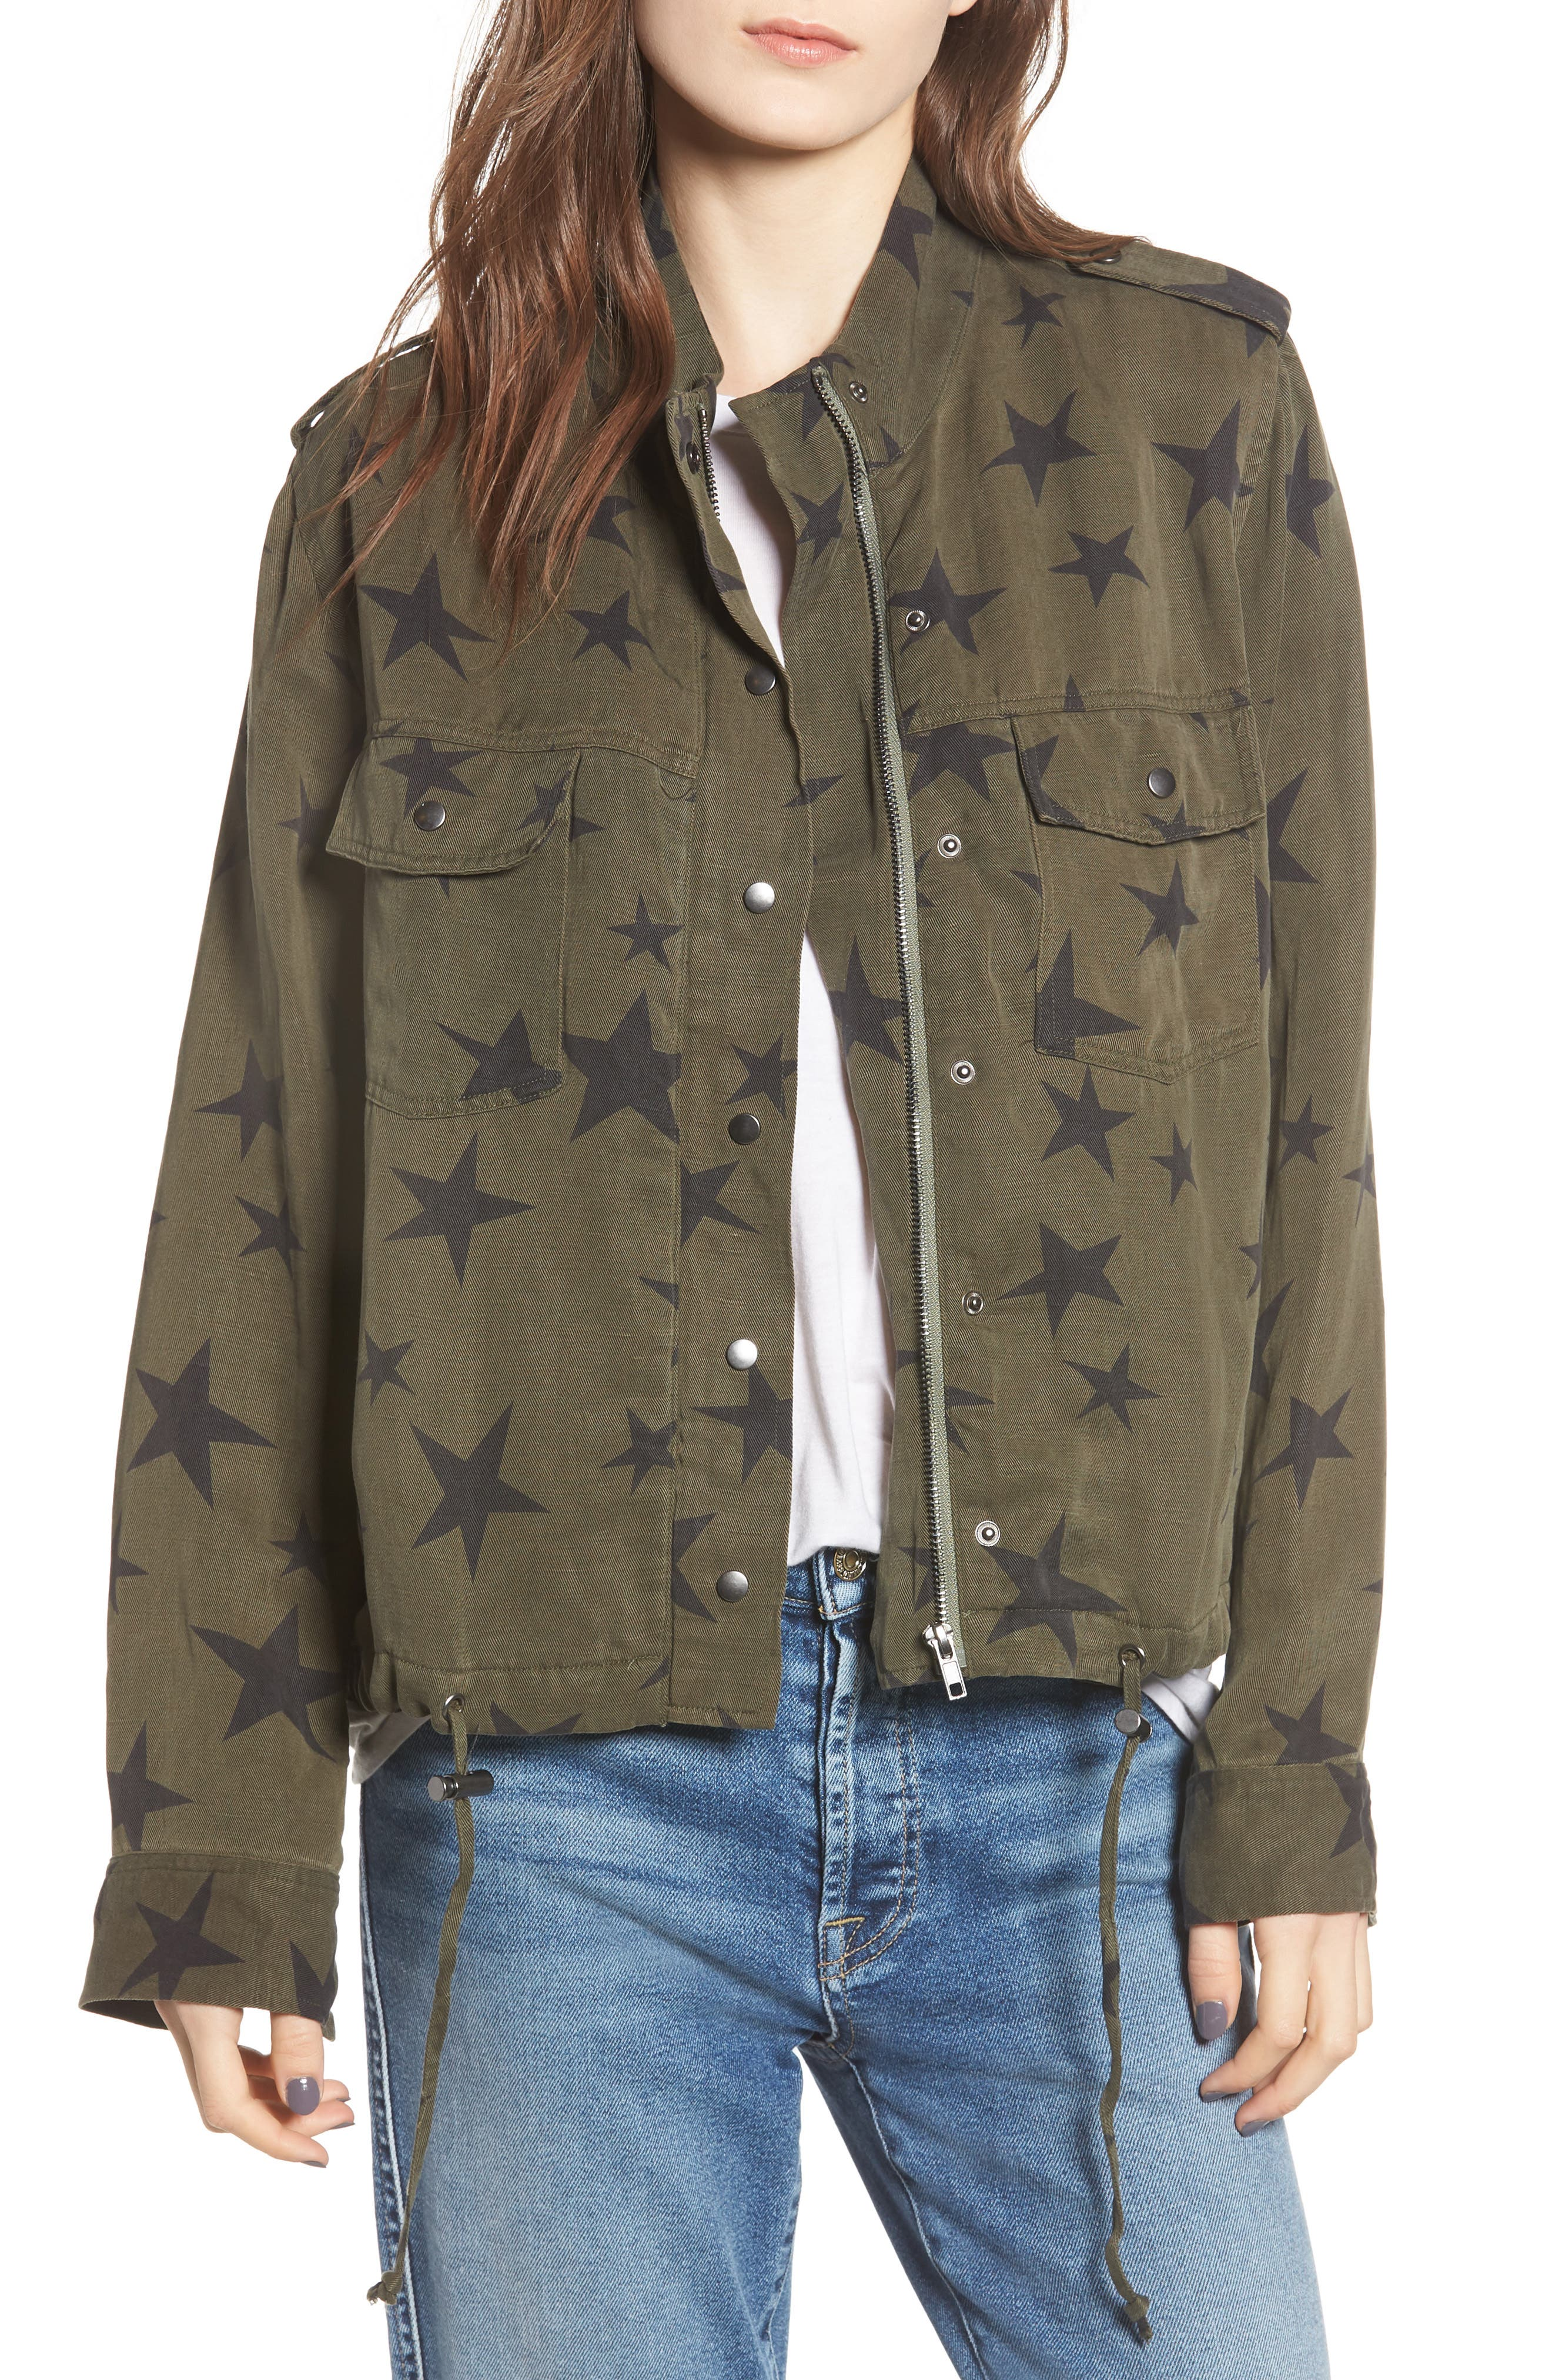 RAILS Collins Star-Print Utility Jacket in Sage With Black Stars